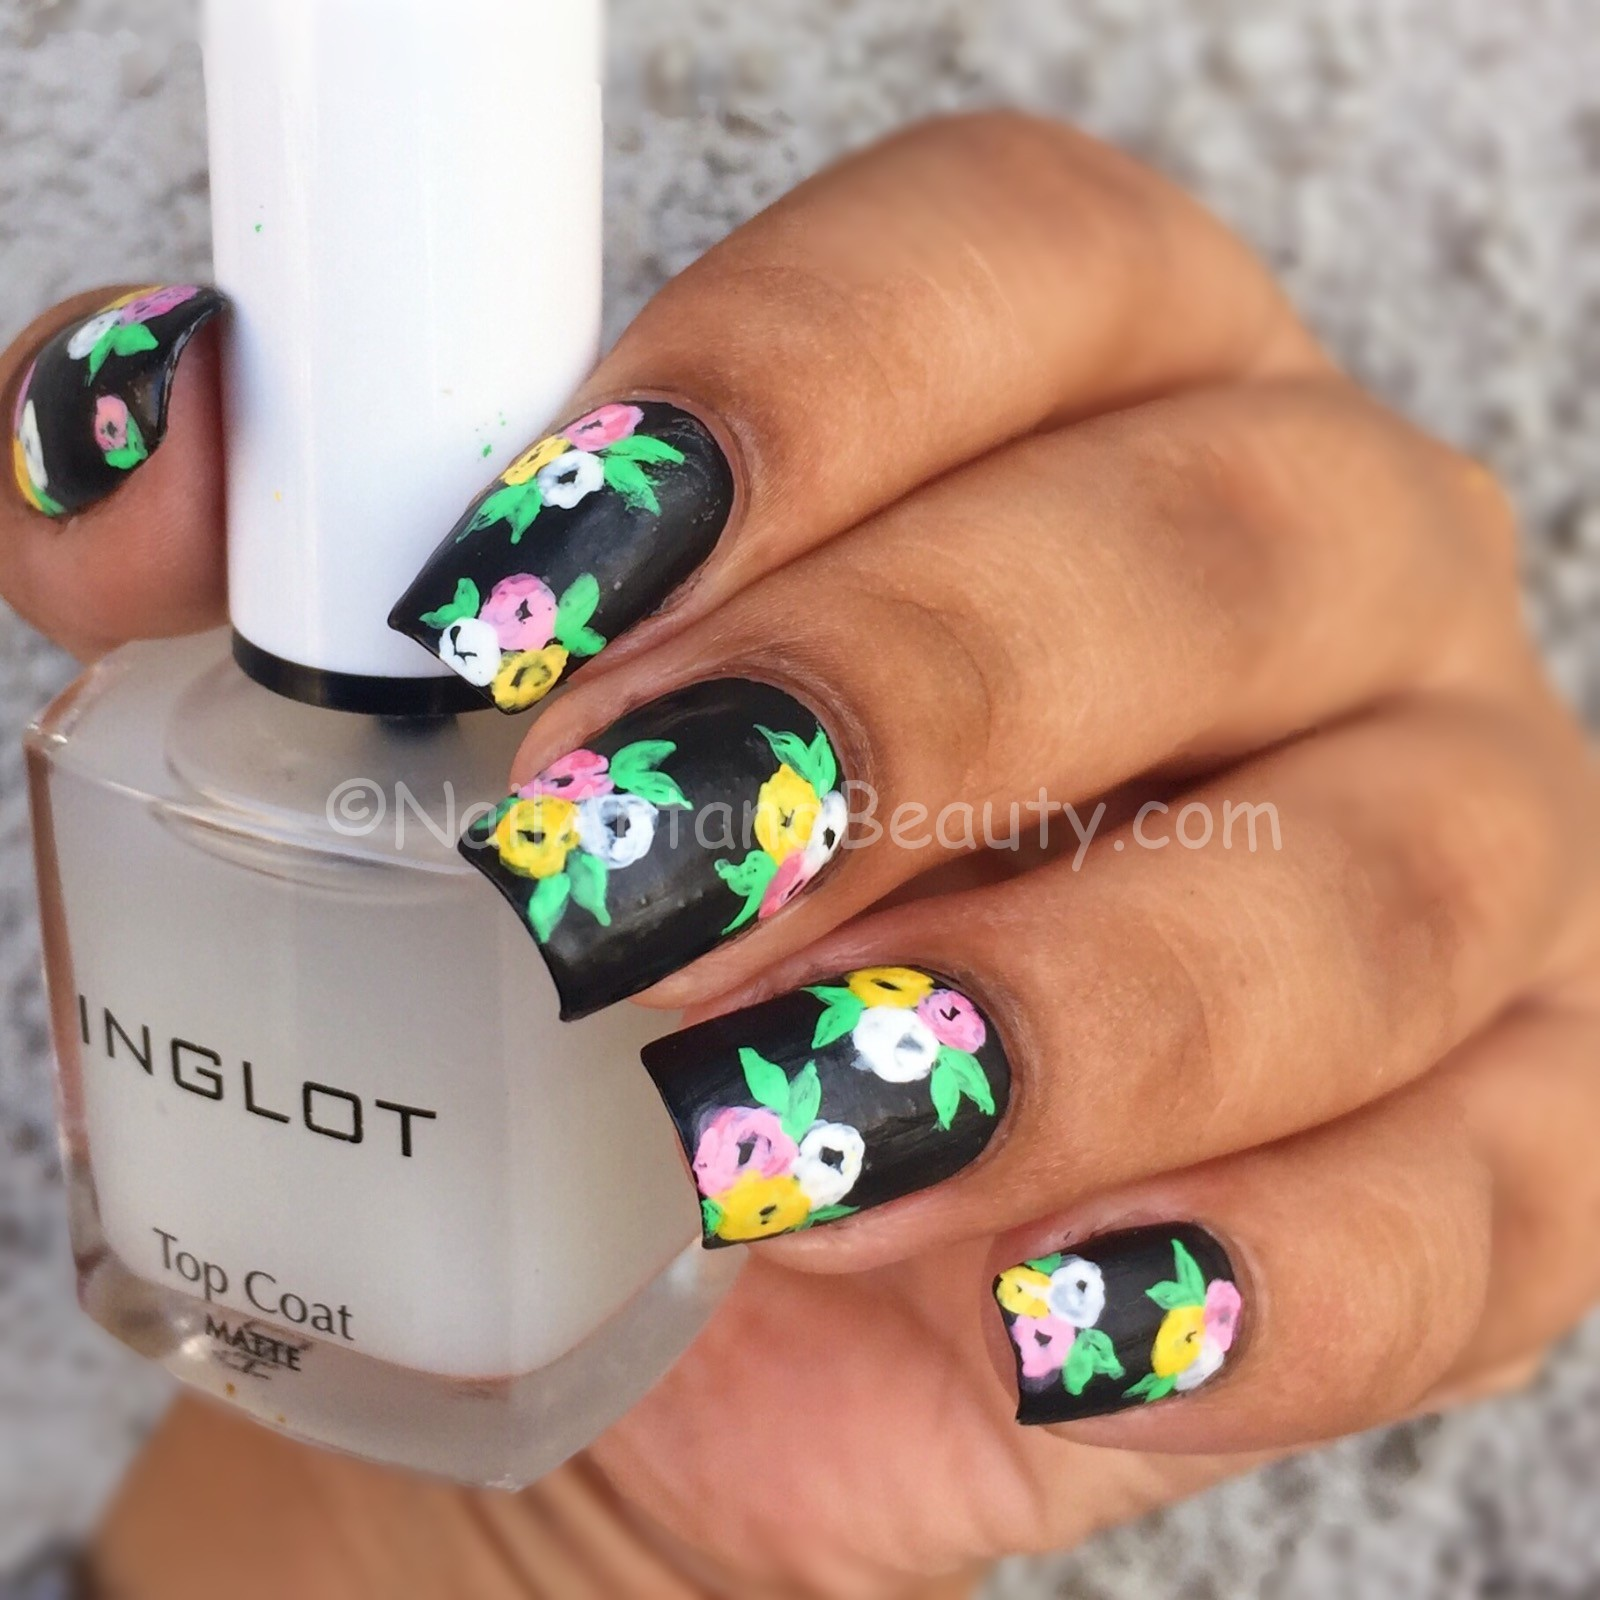 Black Floral Nails inspired by Wondrously Polished